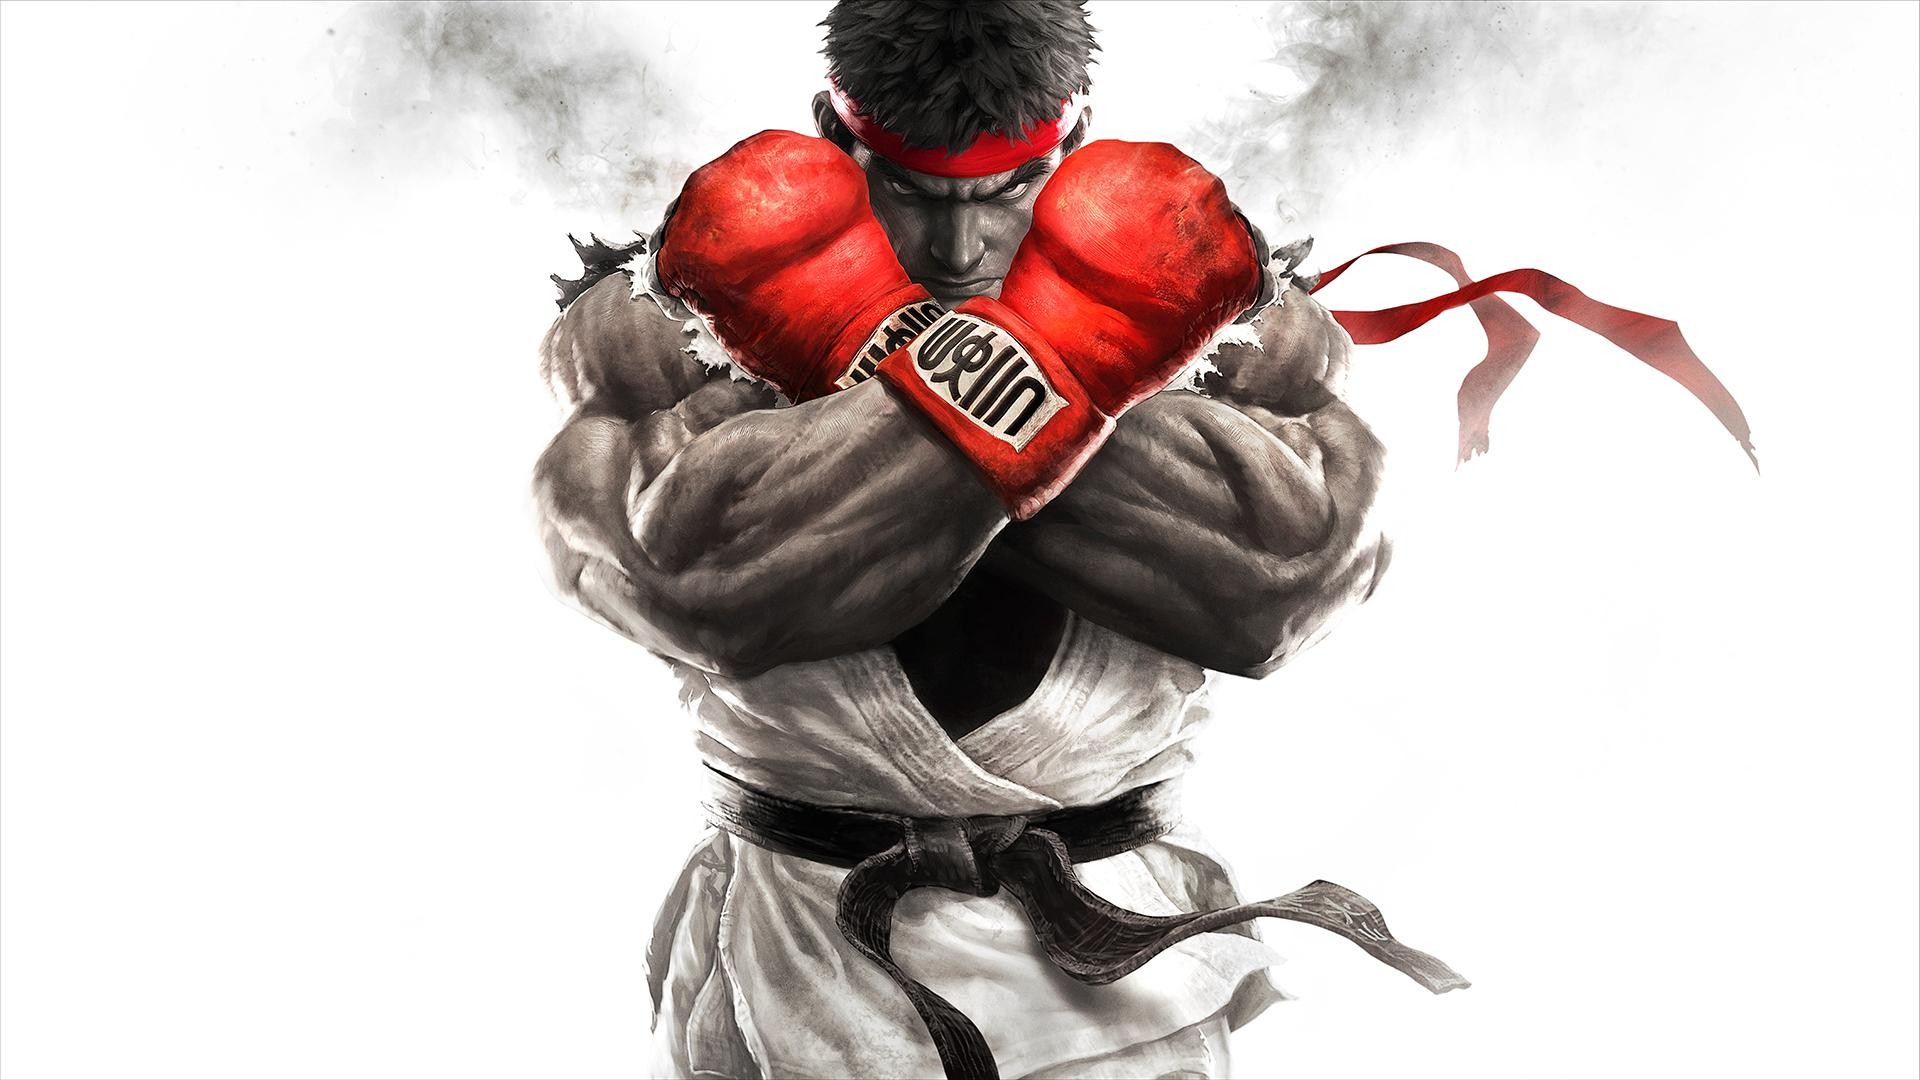 street_fighter_v_game_pc_capcom_ps4_ryu_hd-wallpaper-1894754.jpg  (1920×1080)   FGC   Pinterest   Need to, Lets go and Happy